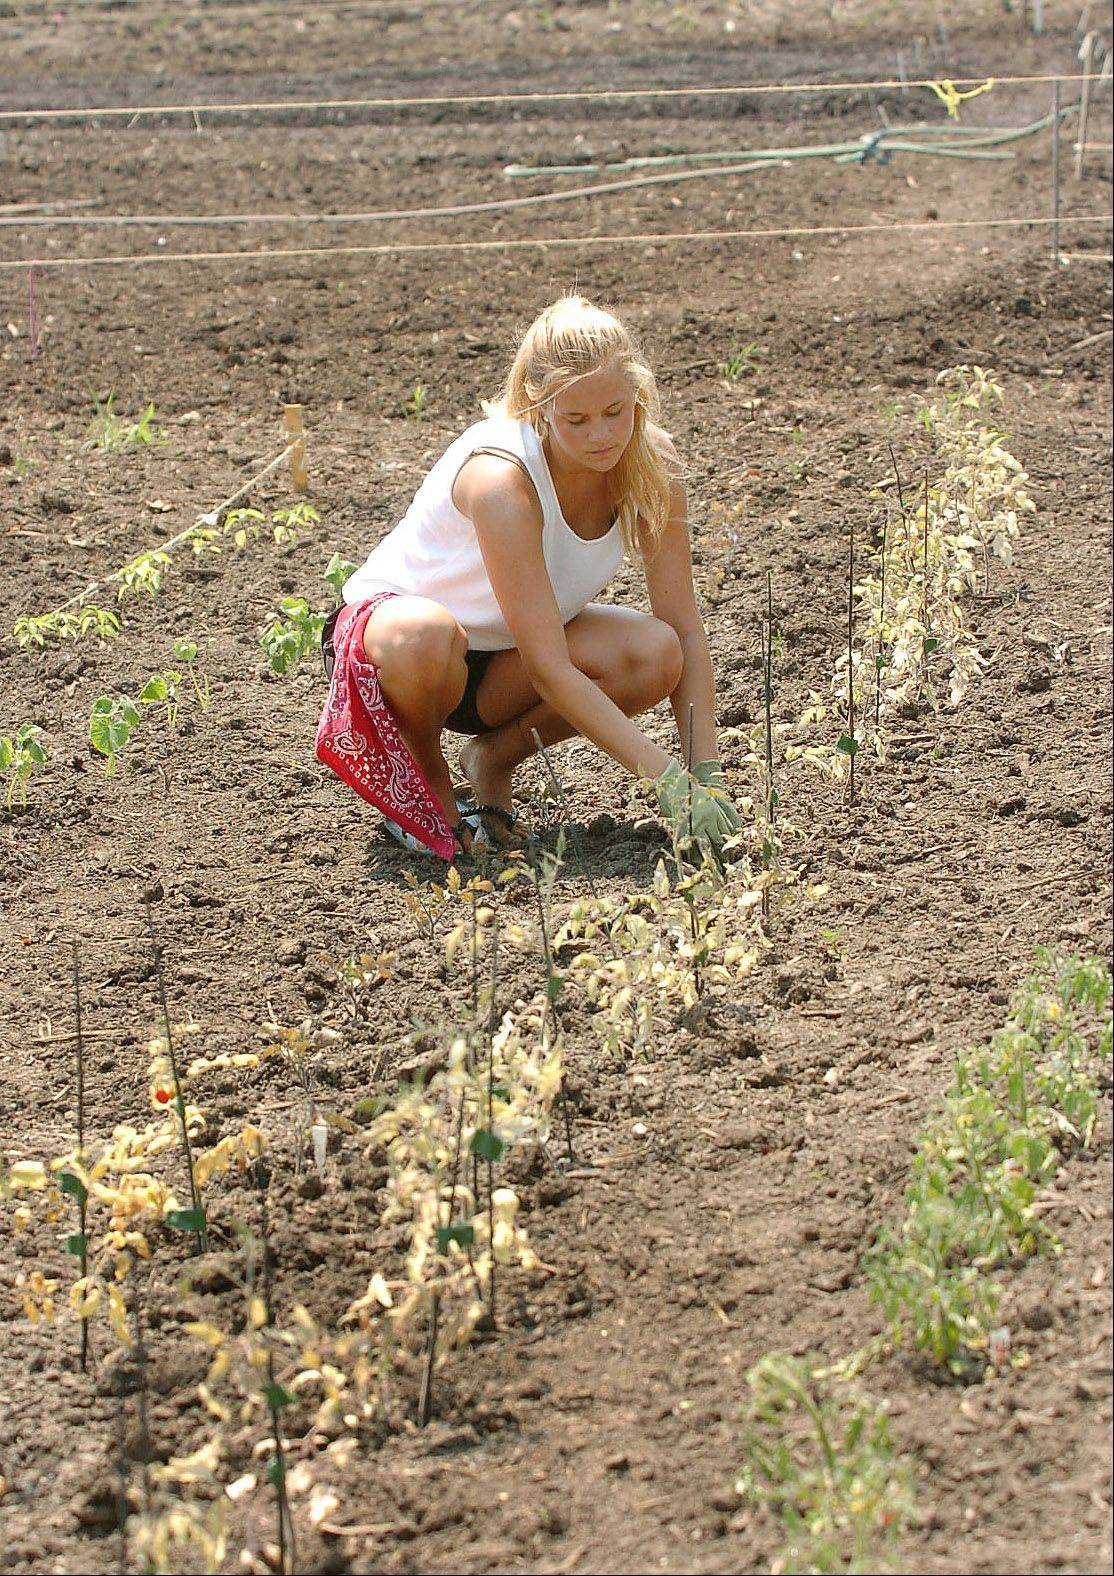 Kirsten Halvorsen tends to her tomatoes in her garden space at Natural Environments nursery in Hawthorn Woods.